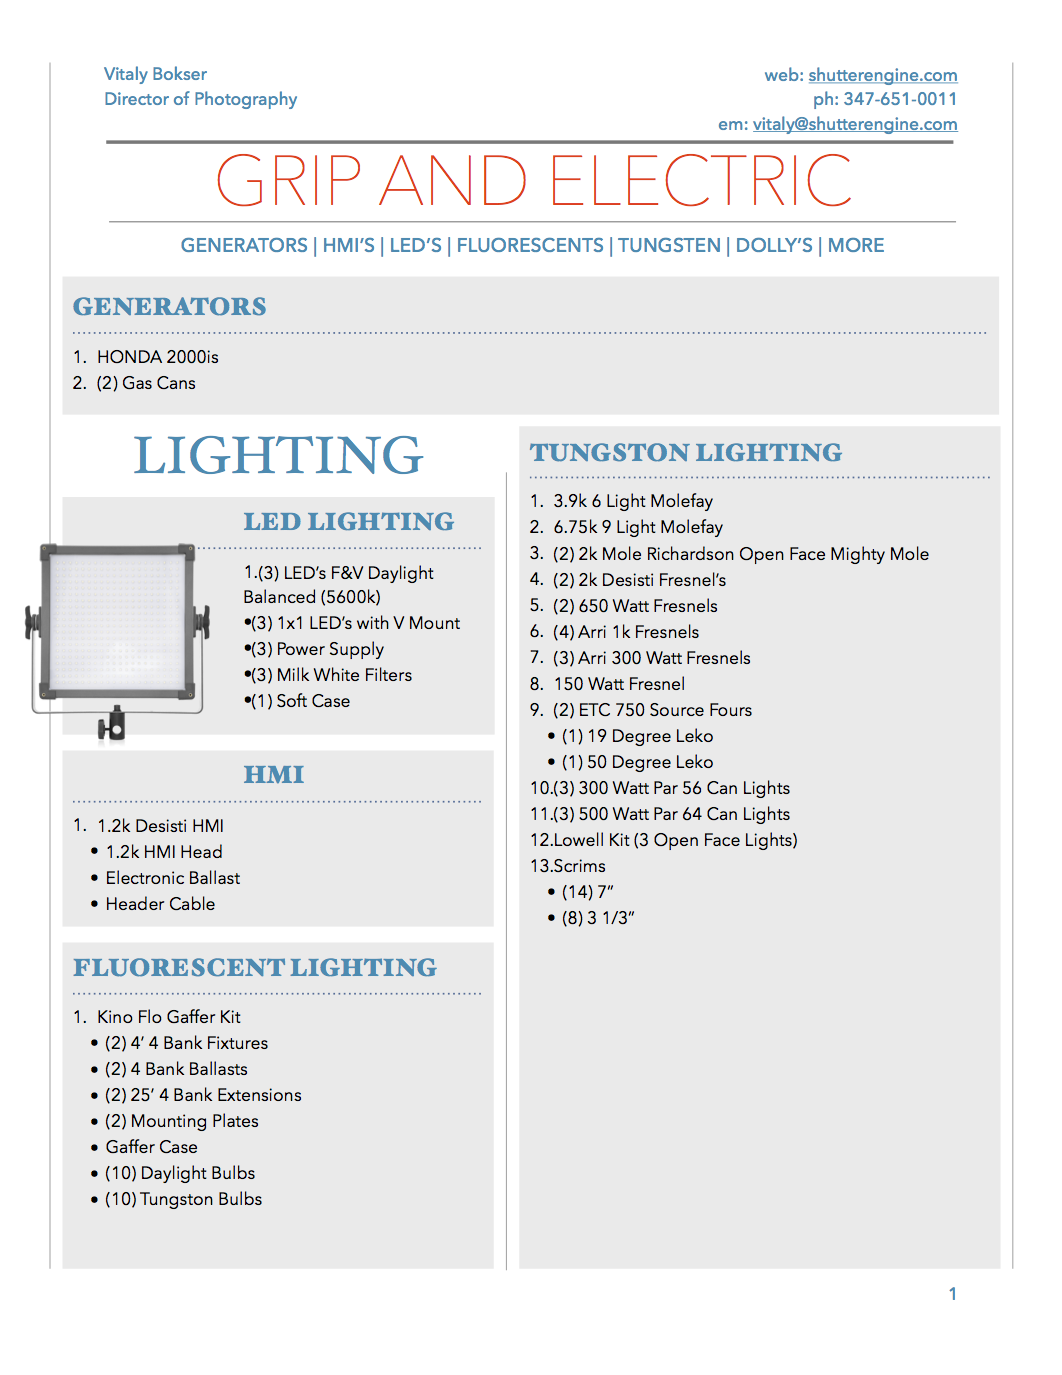 Grip and Electric Package Pg 1